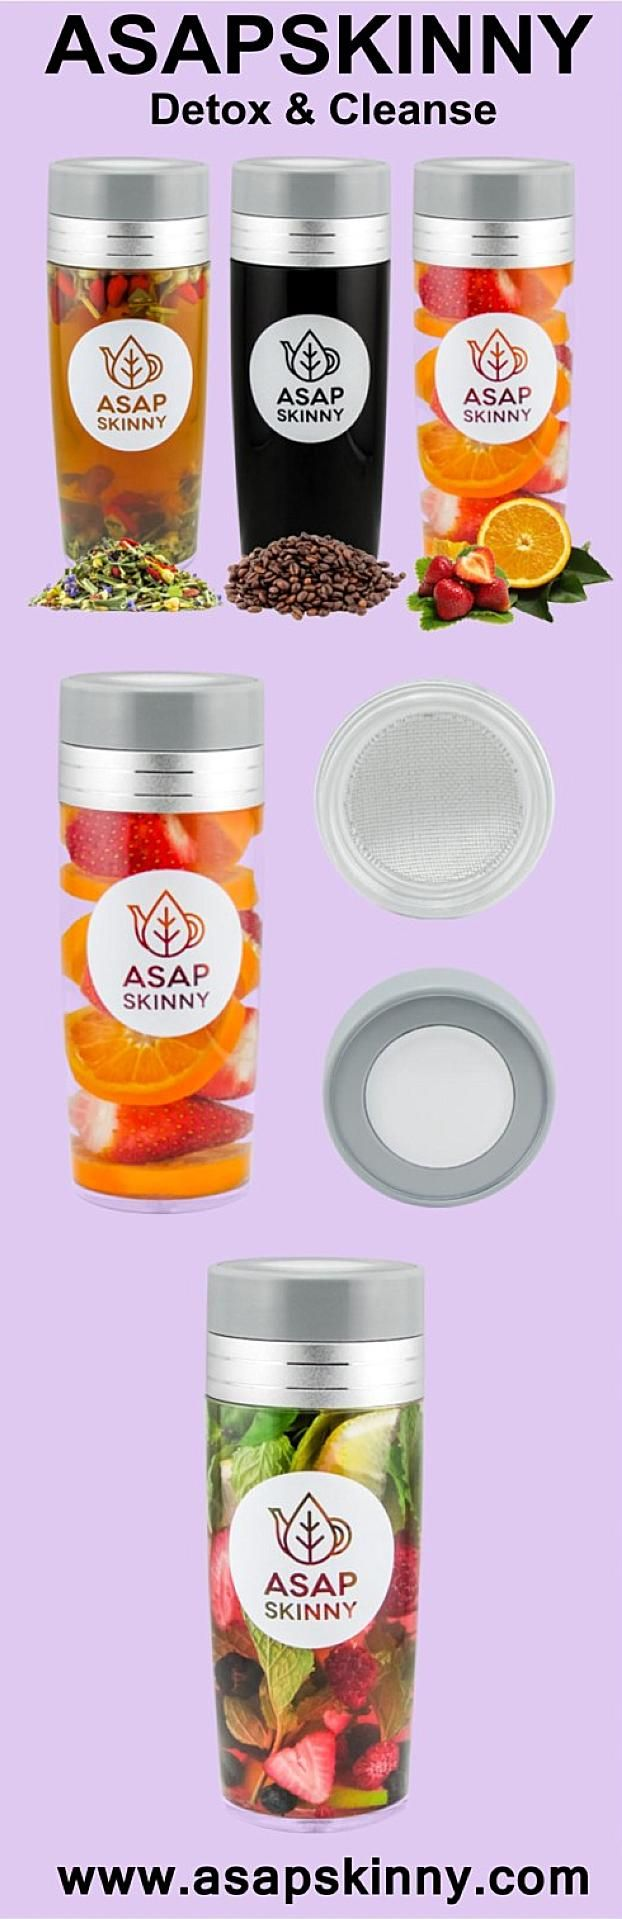 Detox & Cleanse with ASAPSKINNY! Our Versatile Tea Infuser Bottle comes with a FREE Removable Mesh Strainer/Steeper. Now You can Detox Any Time, Anywhere! Use it to Make Loose Leaf Tea, Fruit Infused Water or Coffee. Heal Your Body with Ease. Hurry, Selling Out FAST! Visit our online store to buy yours TODAY >>> www.asapskinny.com